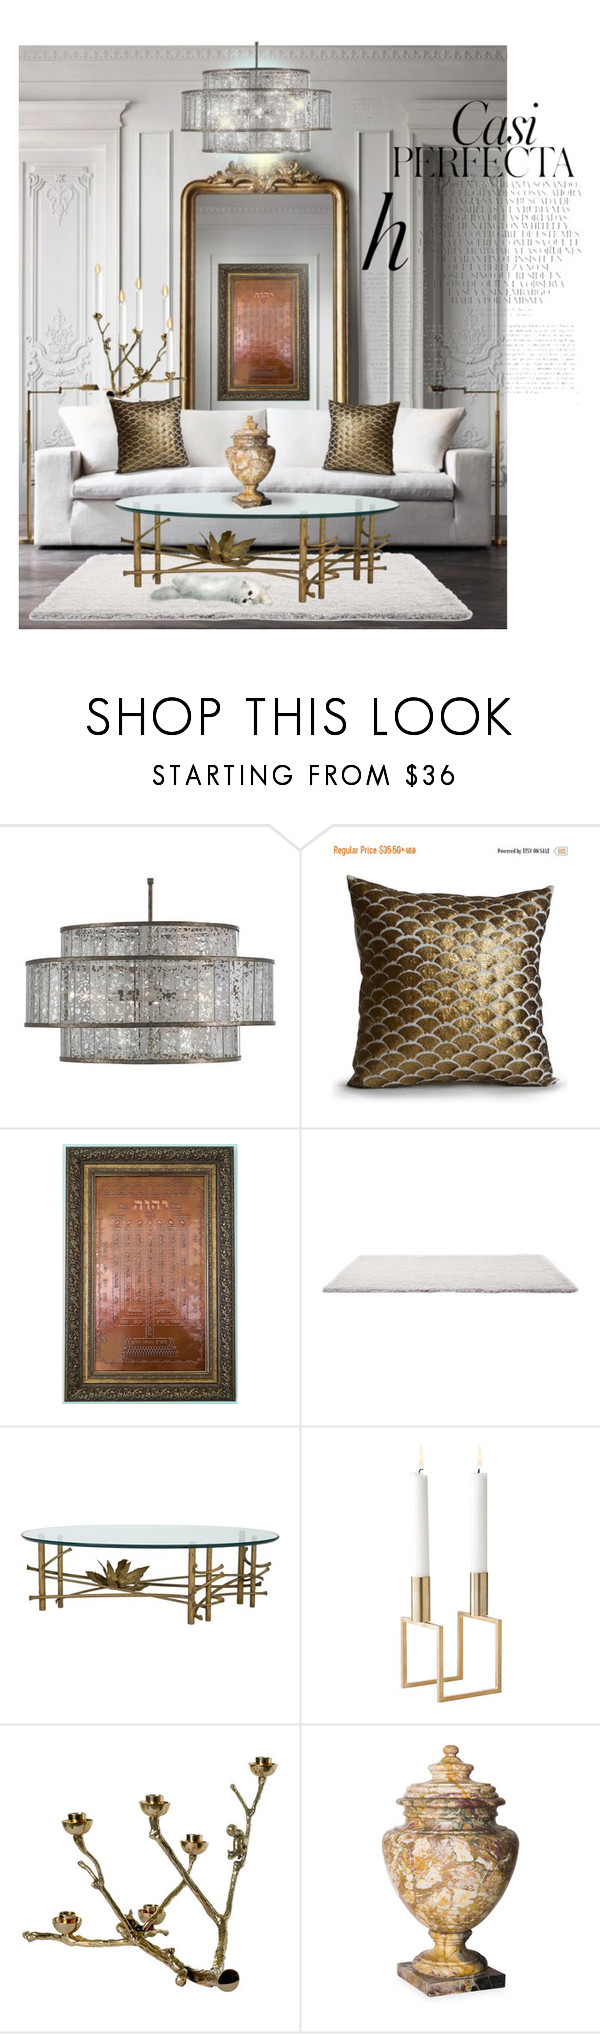 """""""Currey & Company/Lighting Series 2017"""" by neicy-i ❤ liked on Polyvore featuring interior, interiors, interior design, home, home decor, interior decorating, Currey & Company, C. Jeré, Whiteley and Pols Potten"""